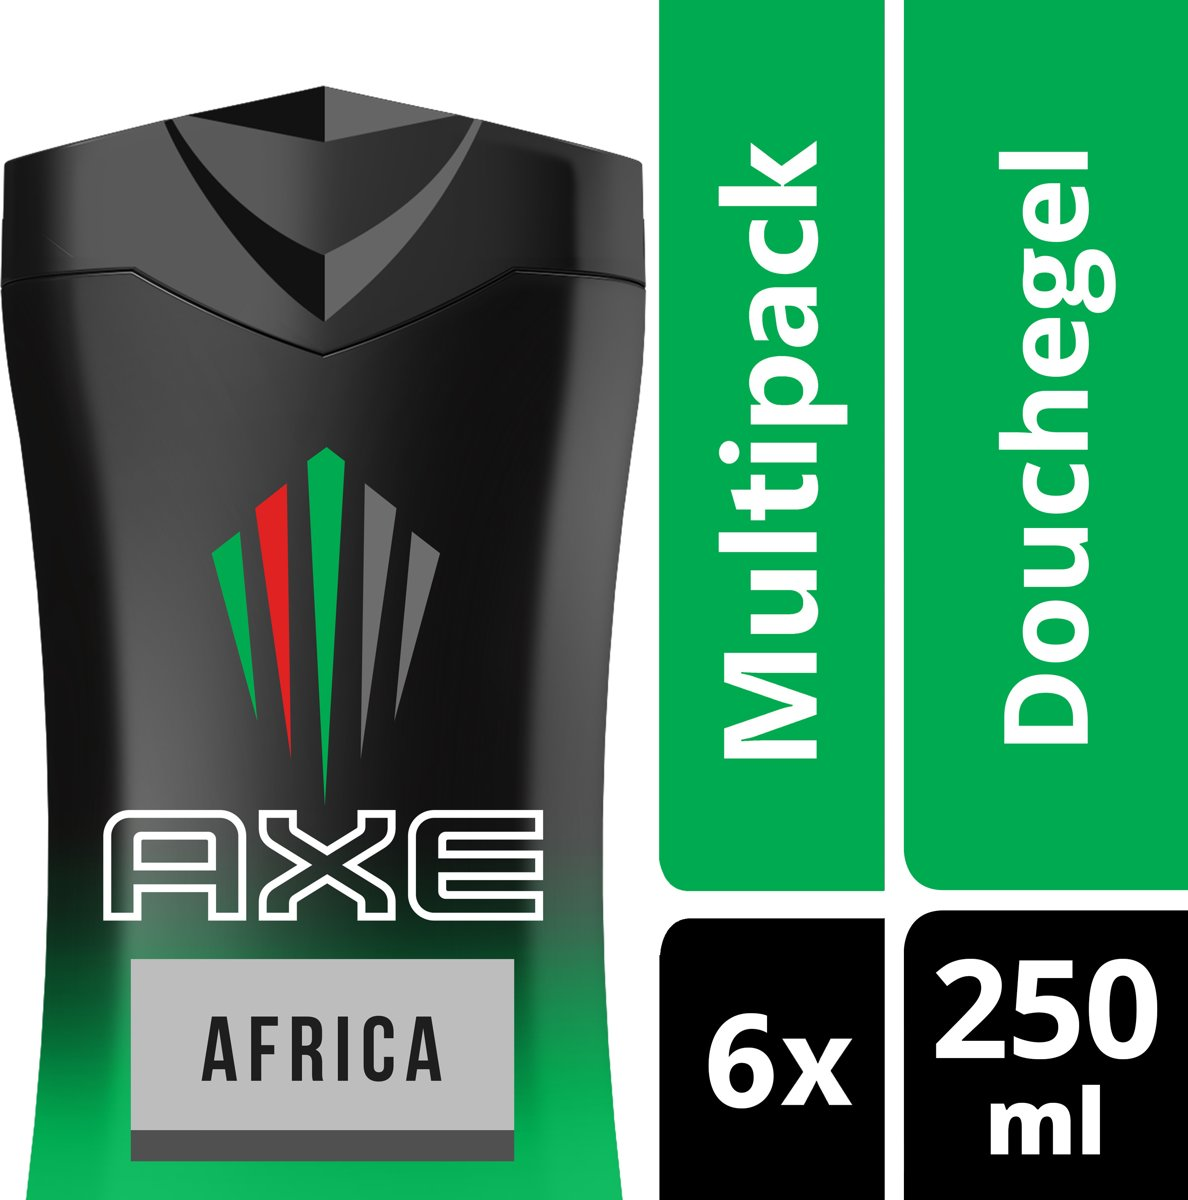 Axe Africa For Men - 6 x 250 ml - Douchegel - Voordeelverpakking